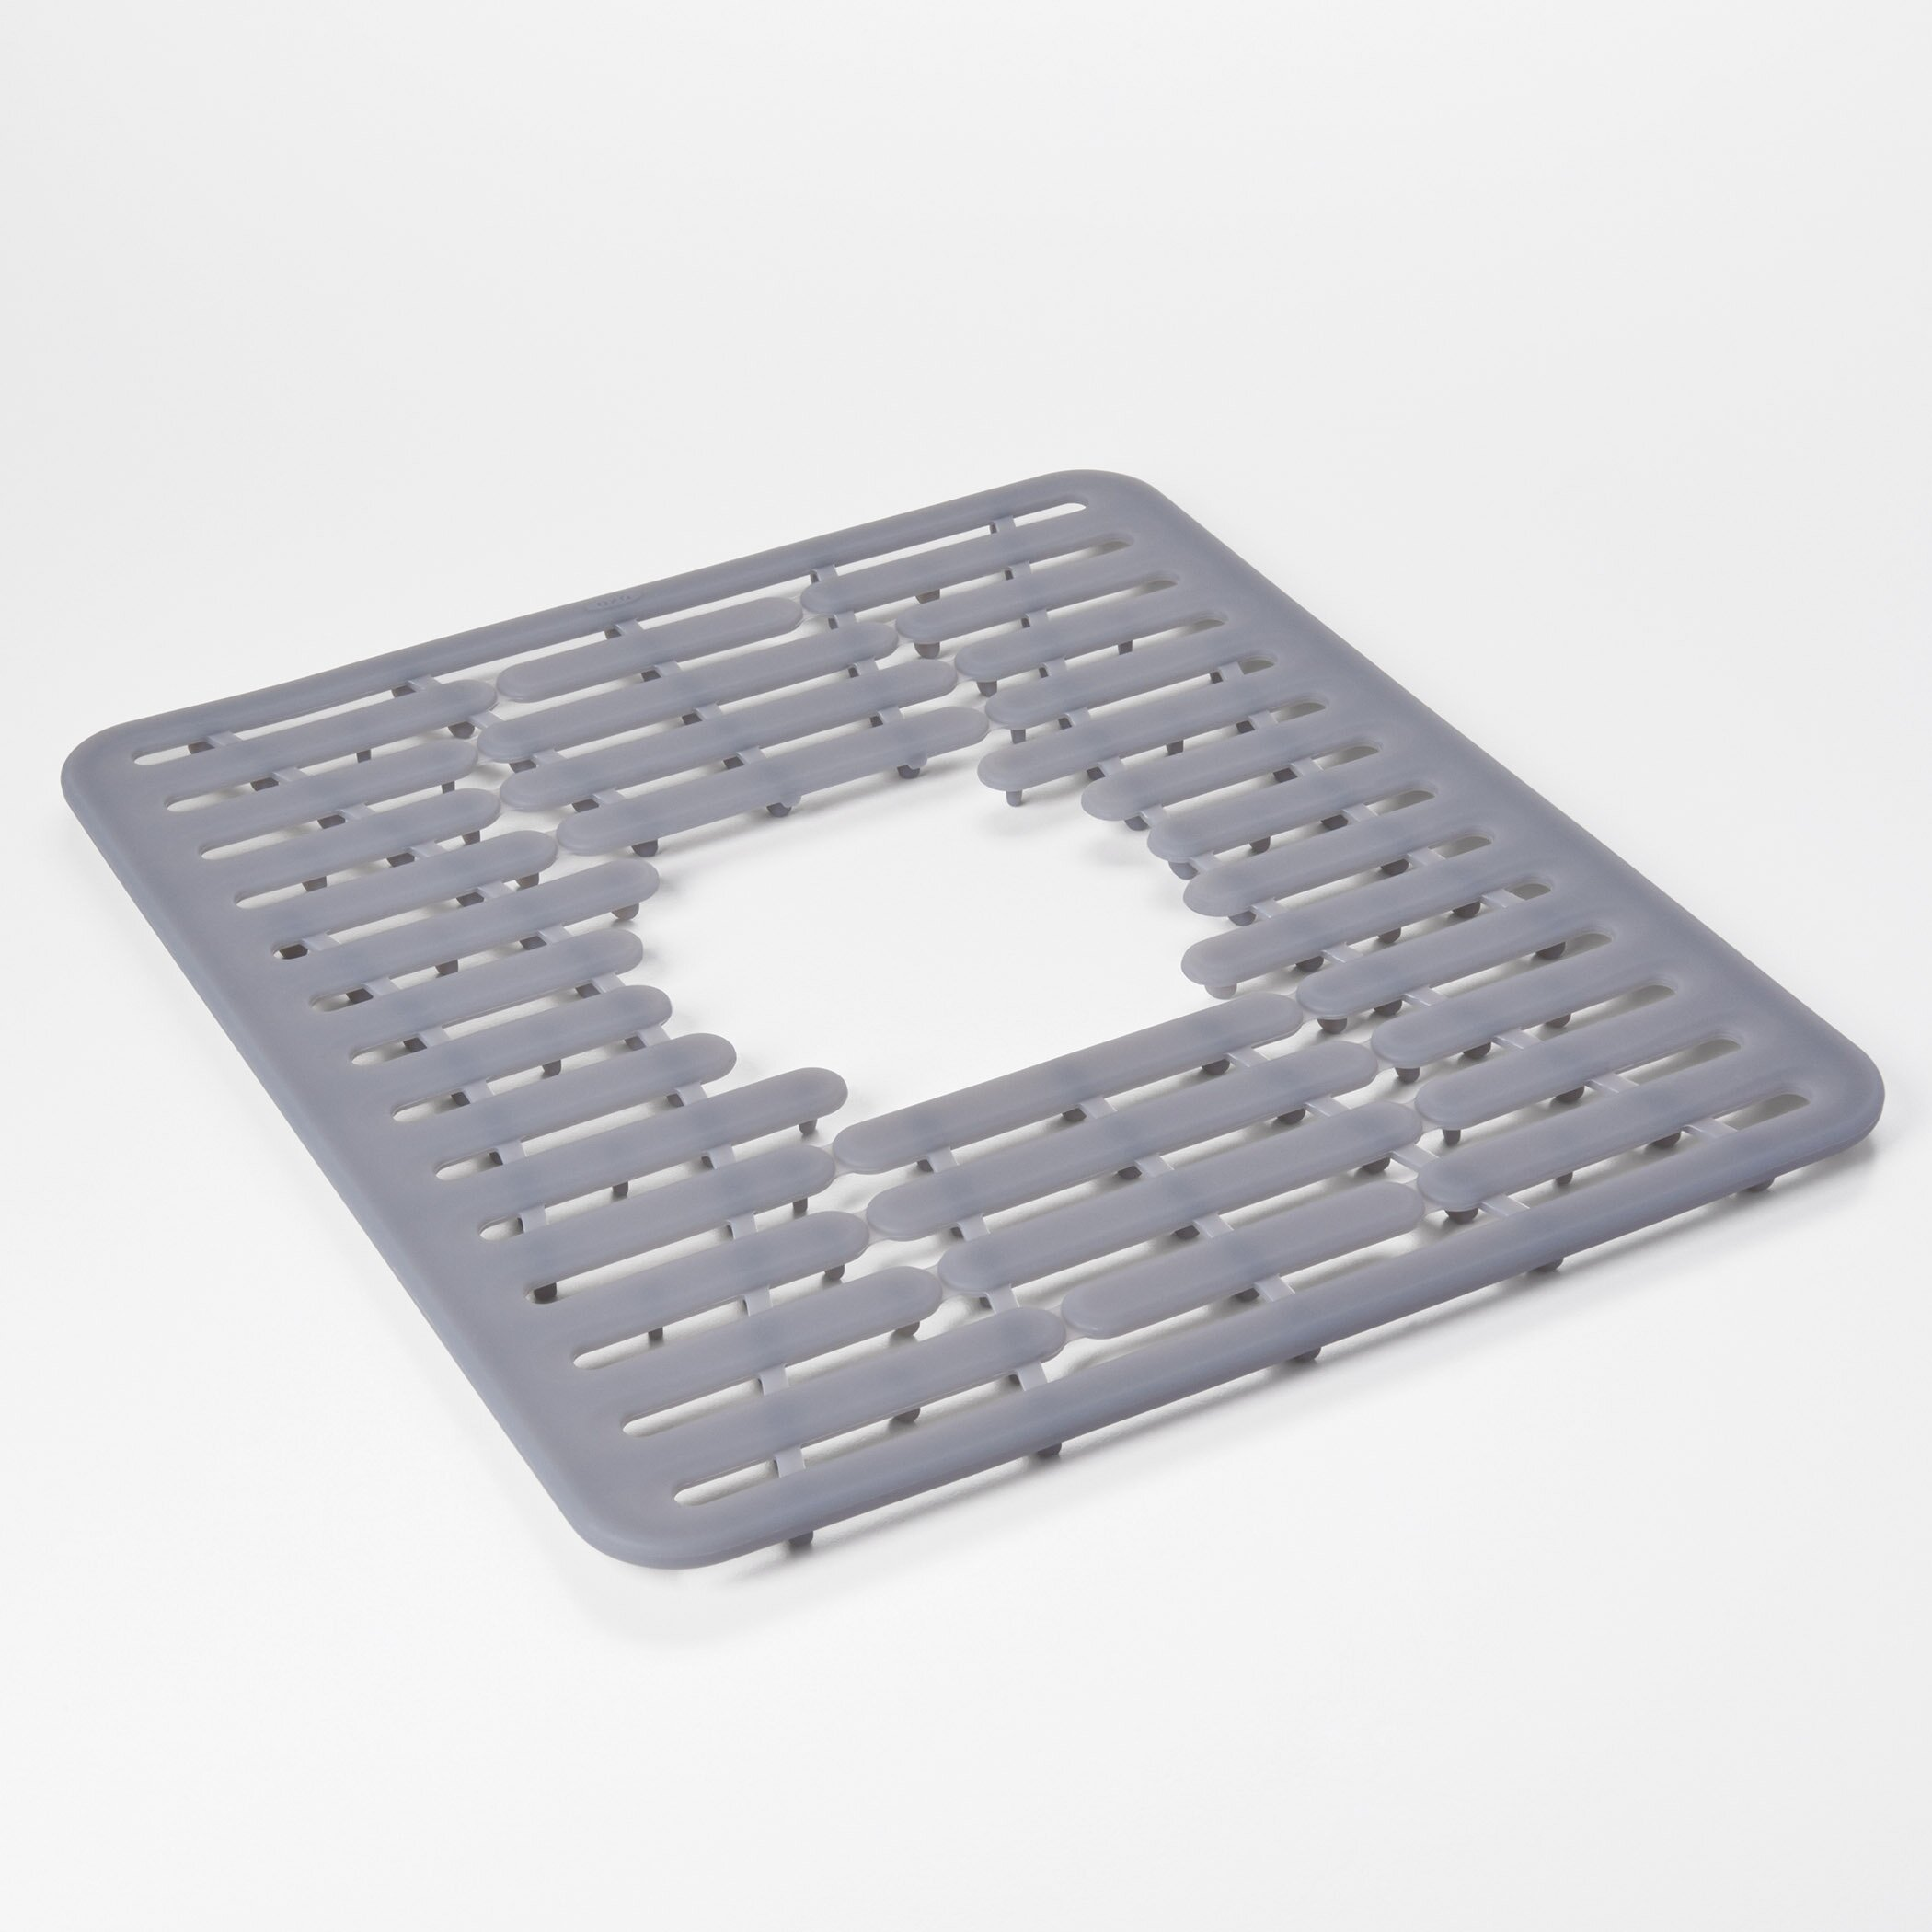 Oxo Good Grips Small Silicone Sink Mat Amp Reviews Wayfair Ca